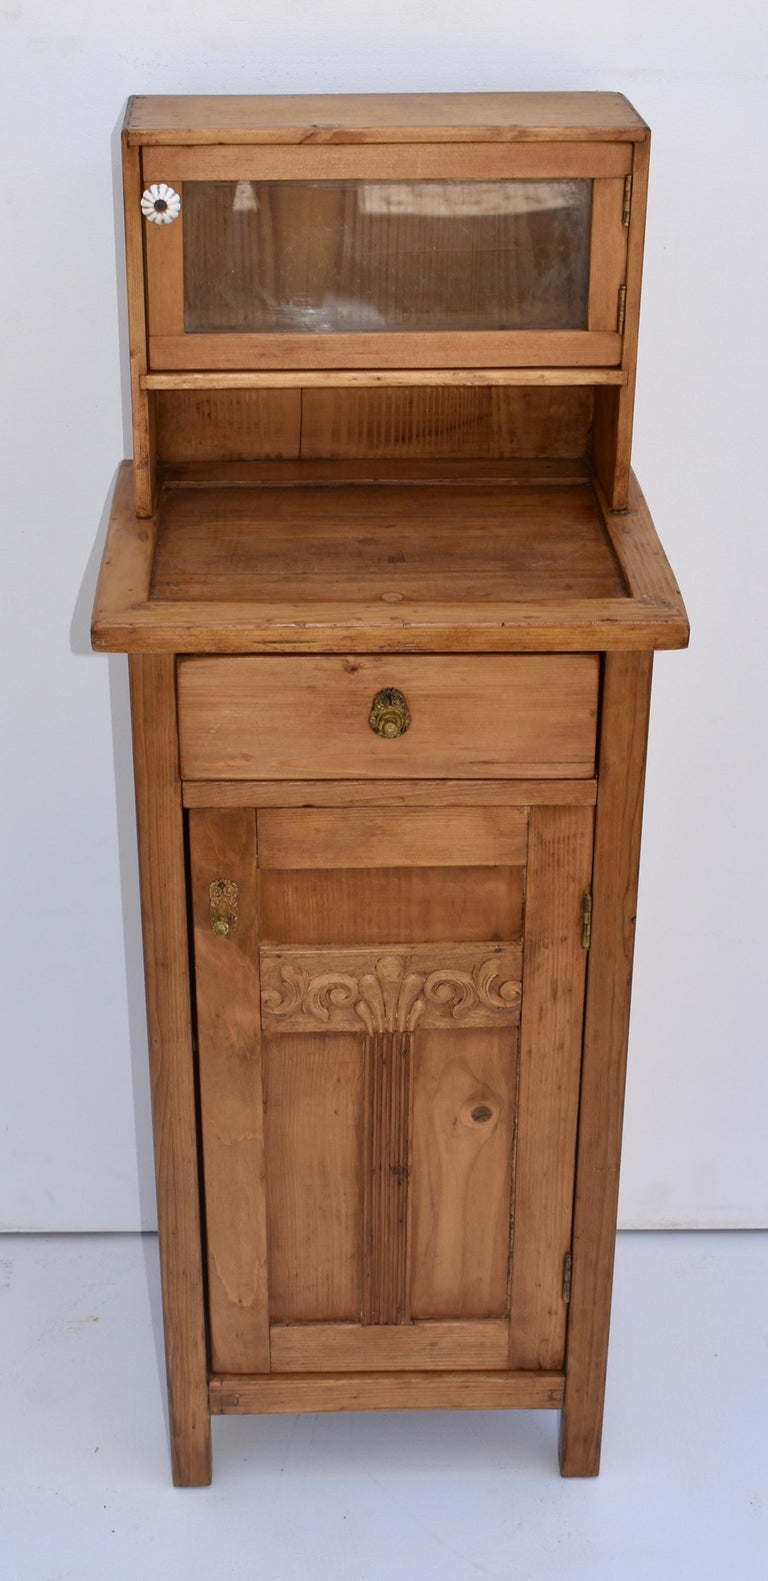 This single nightstand has the usual configuration of one door and one drawer but also has a 12